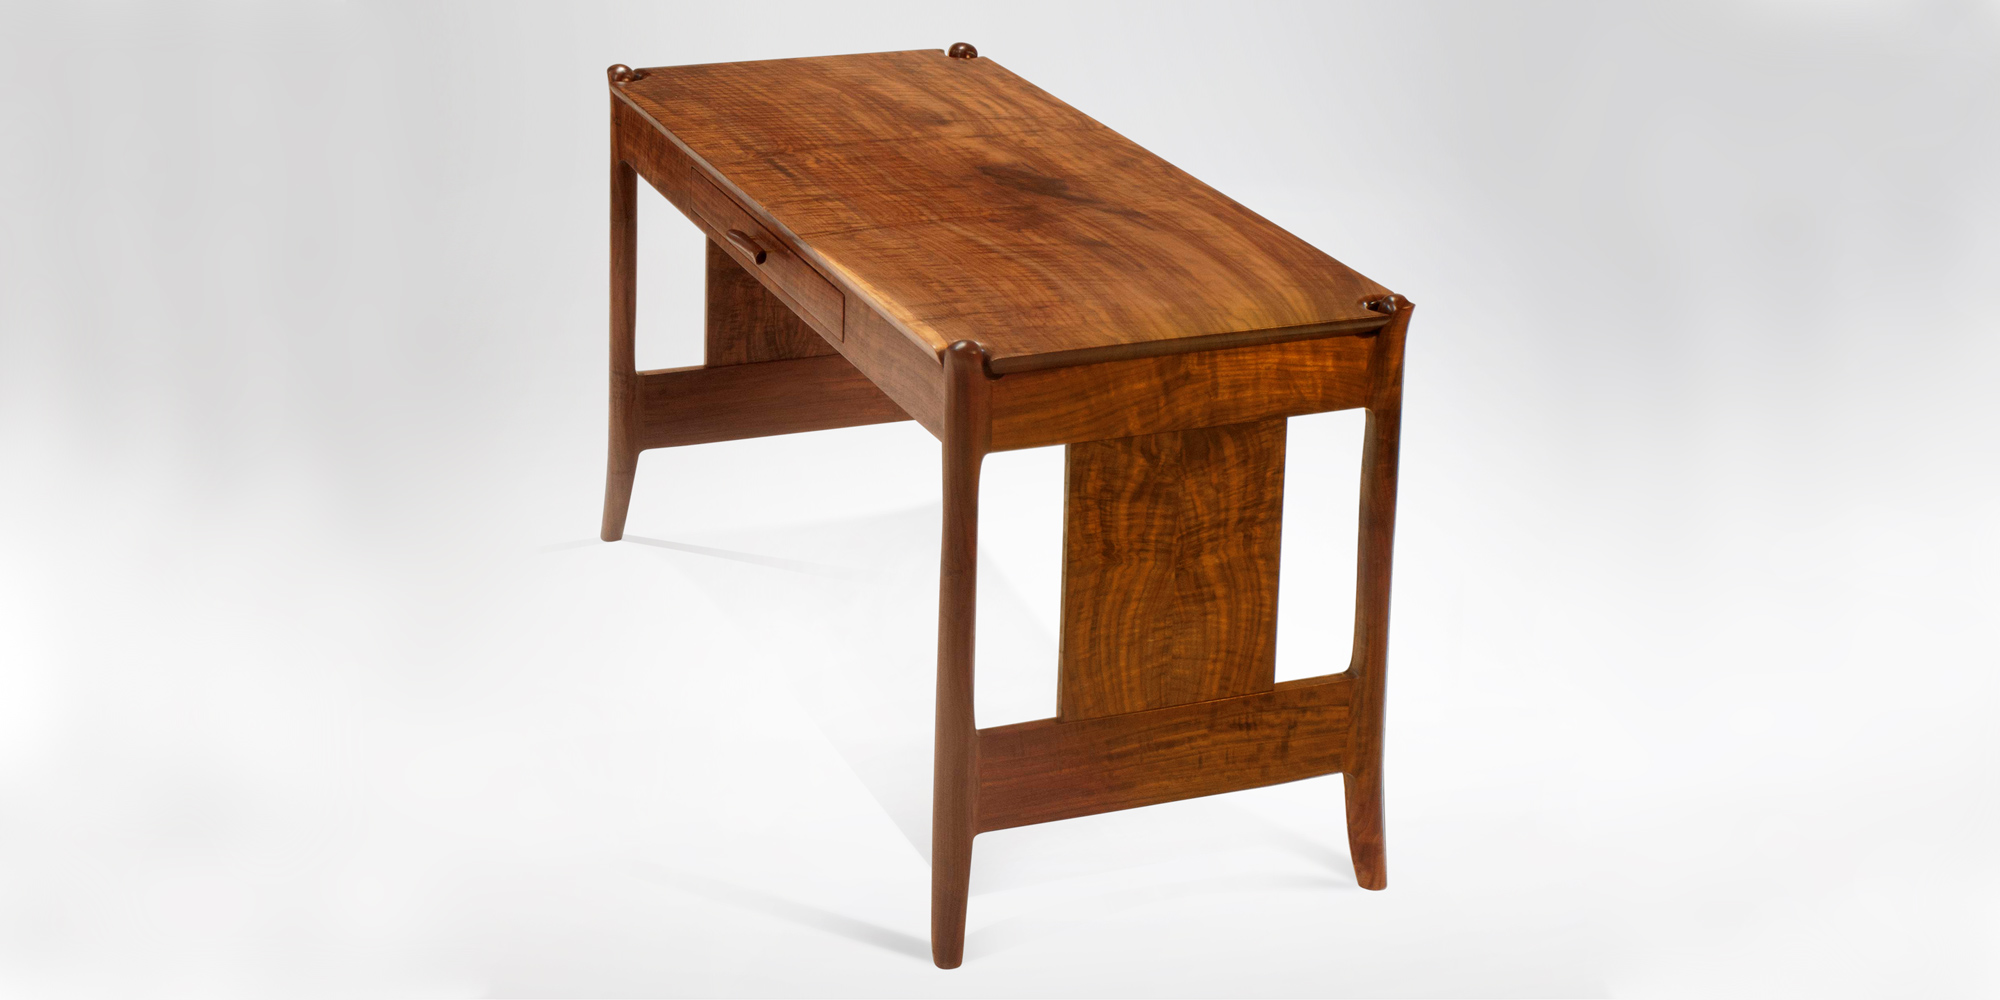 Handmade Murdock office or writing desk